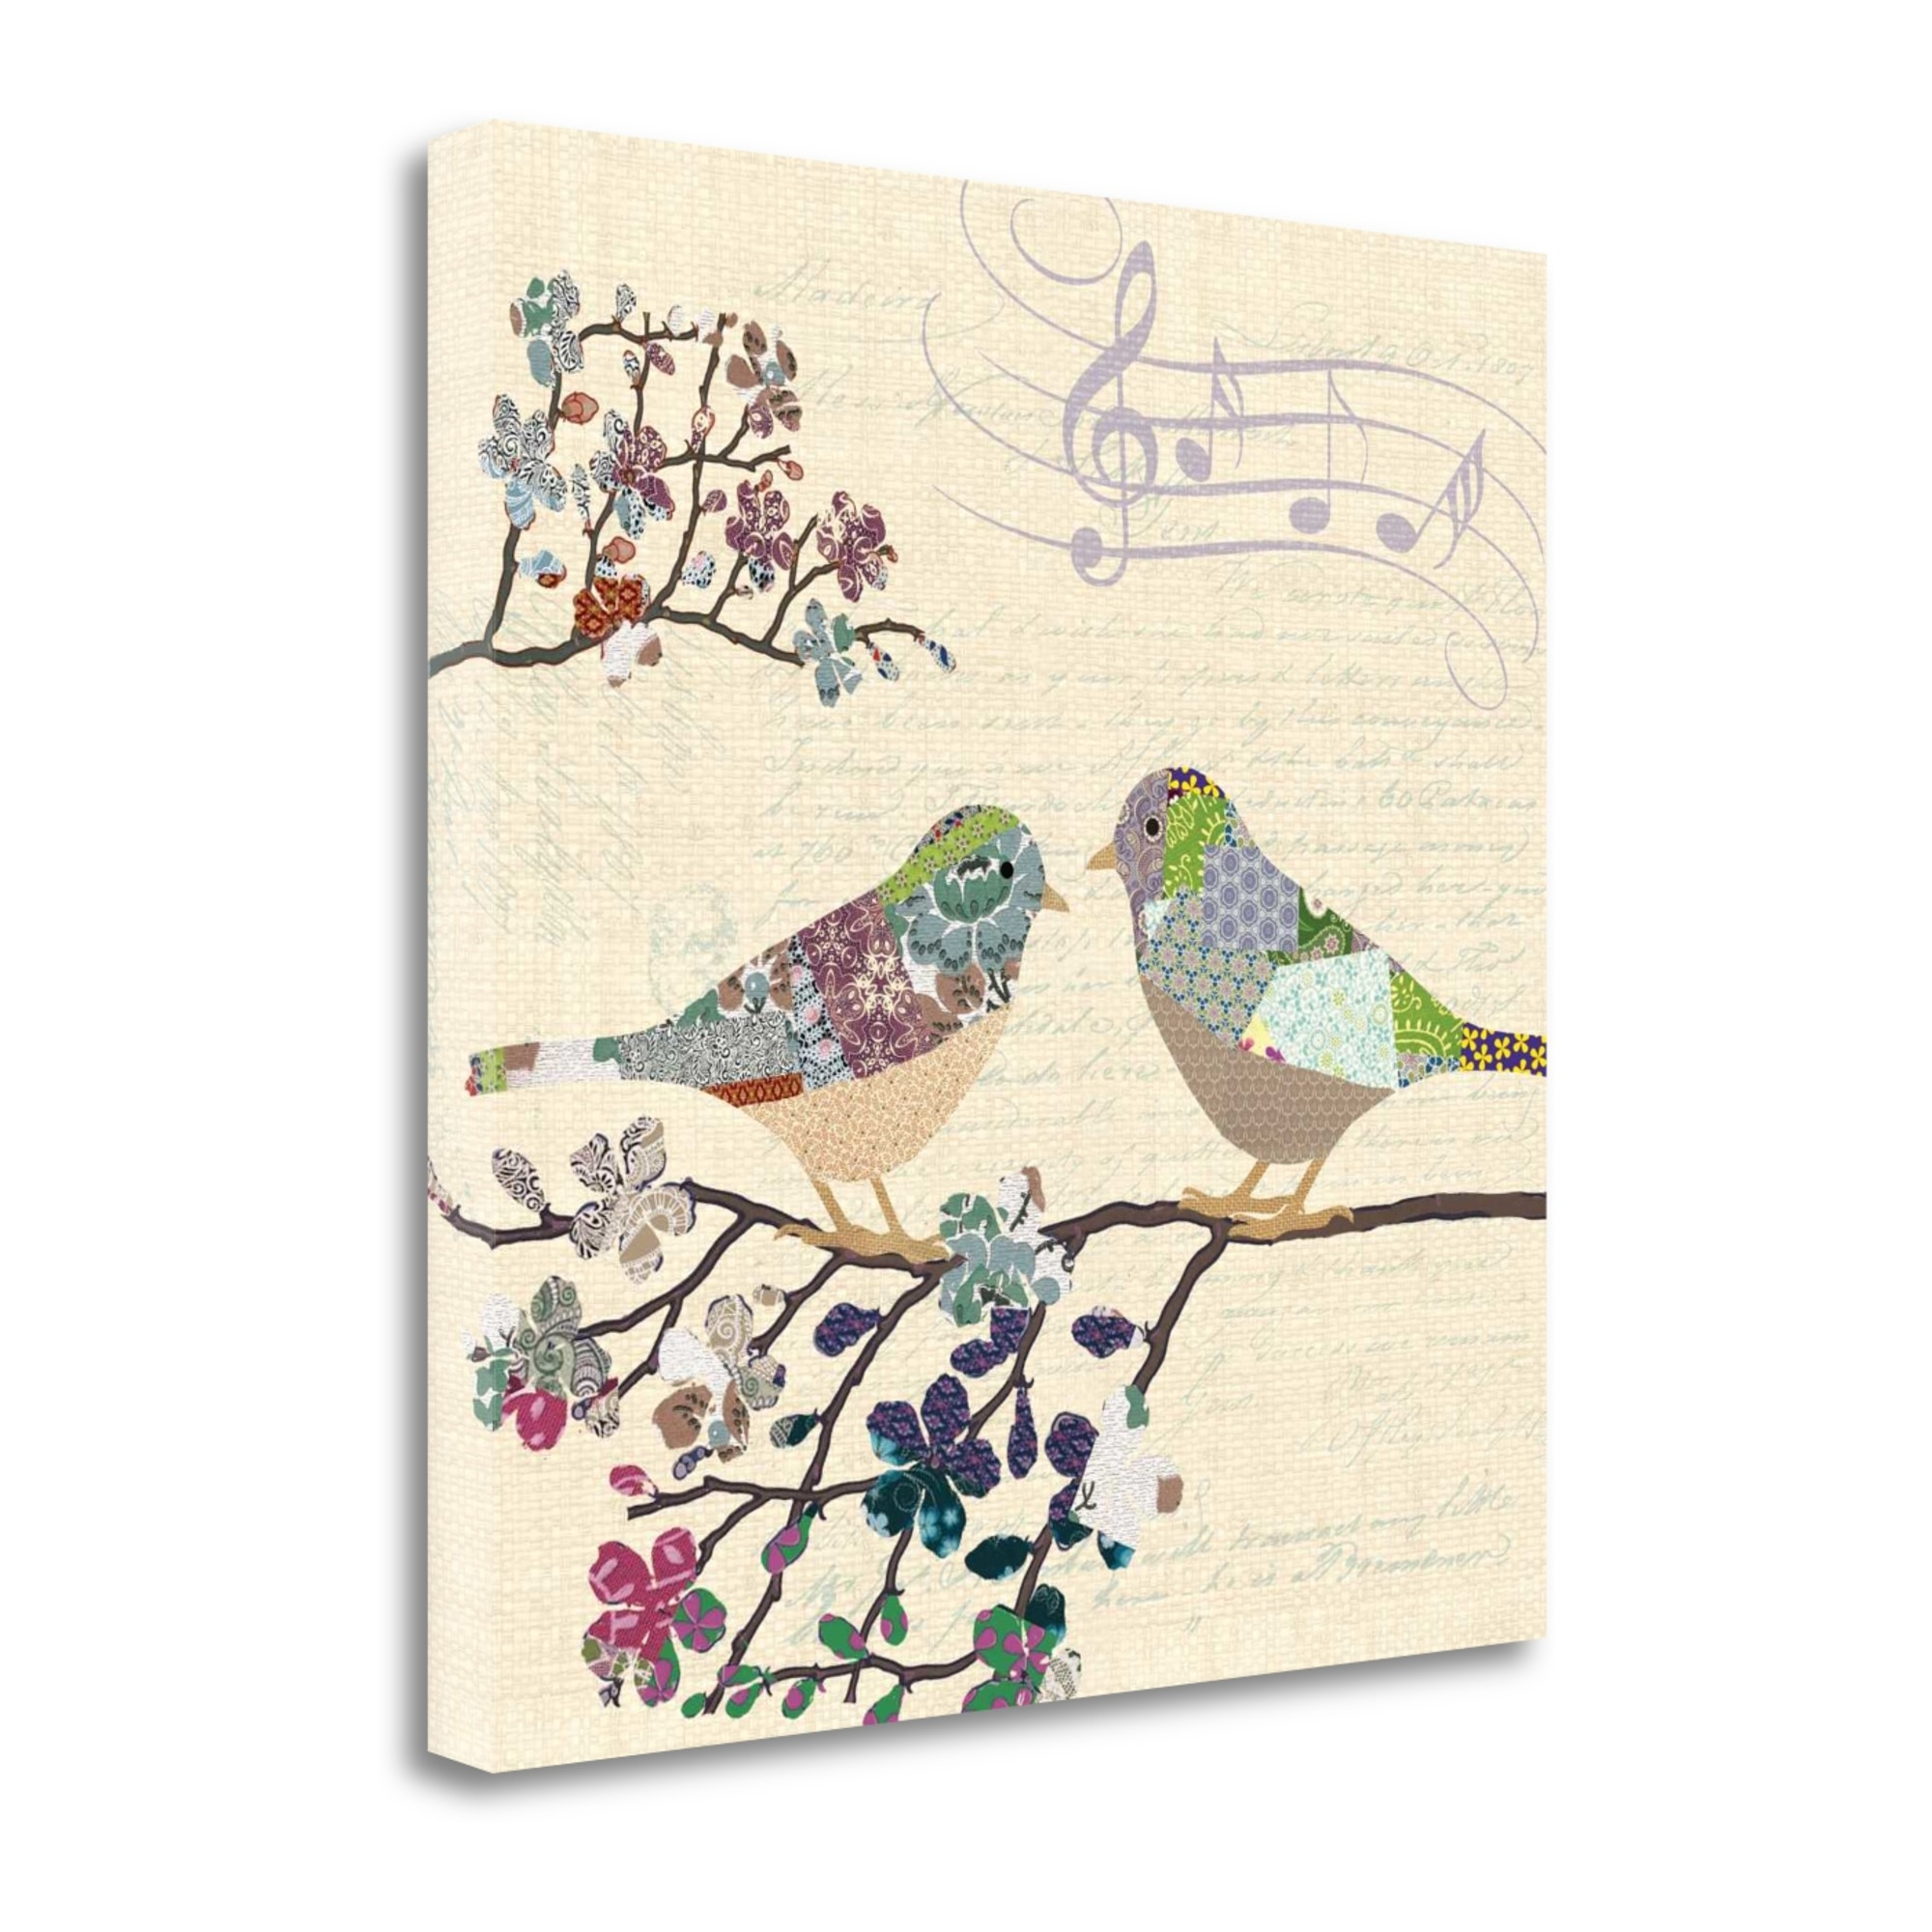 "Patch Work Birds II By Piper Ballantyne, 24"" x 24\"" Fine Art Giclee Print on Gallery Wrap Canvas, Ready to Hang"